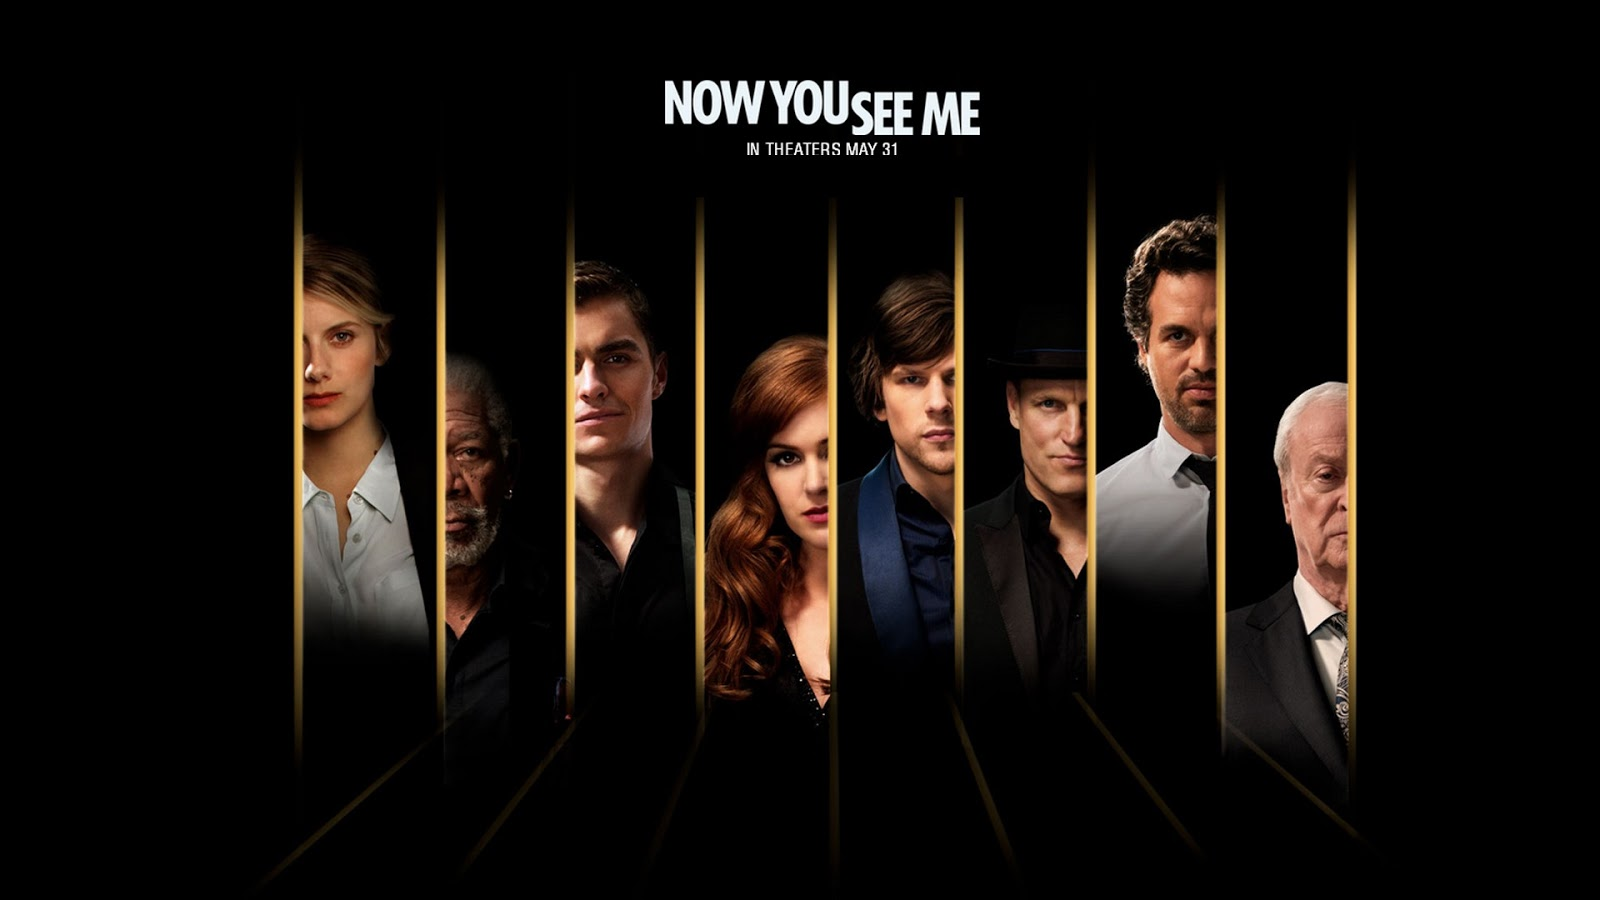 Hollywood Movies Now You See Me 2013